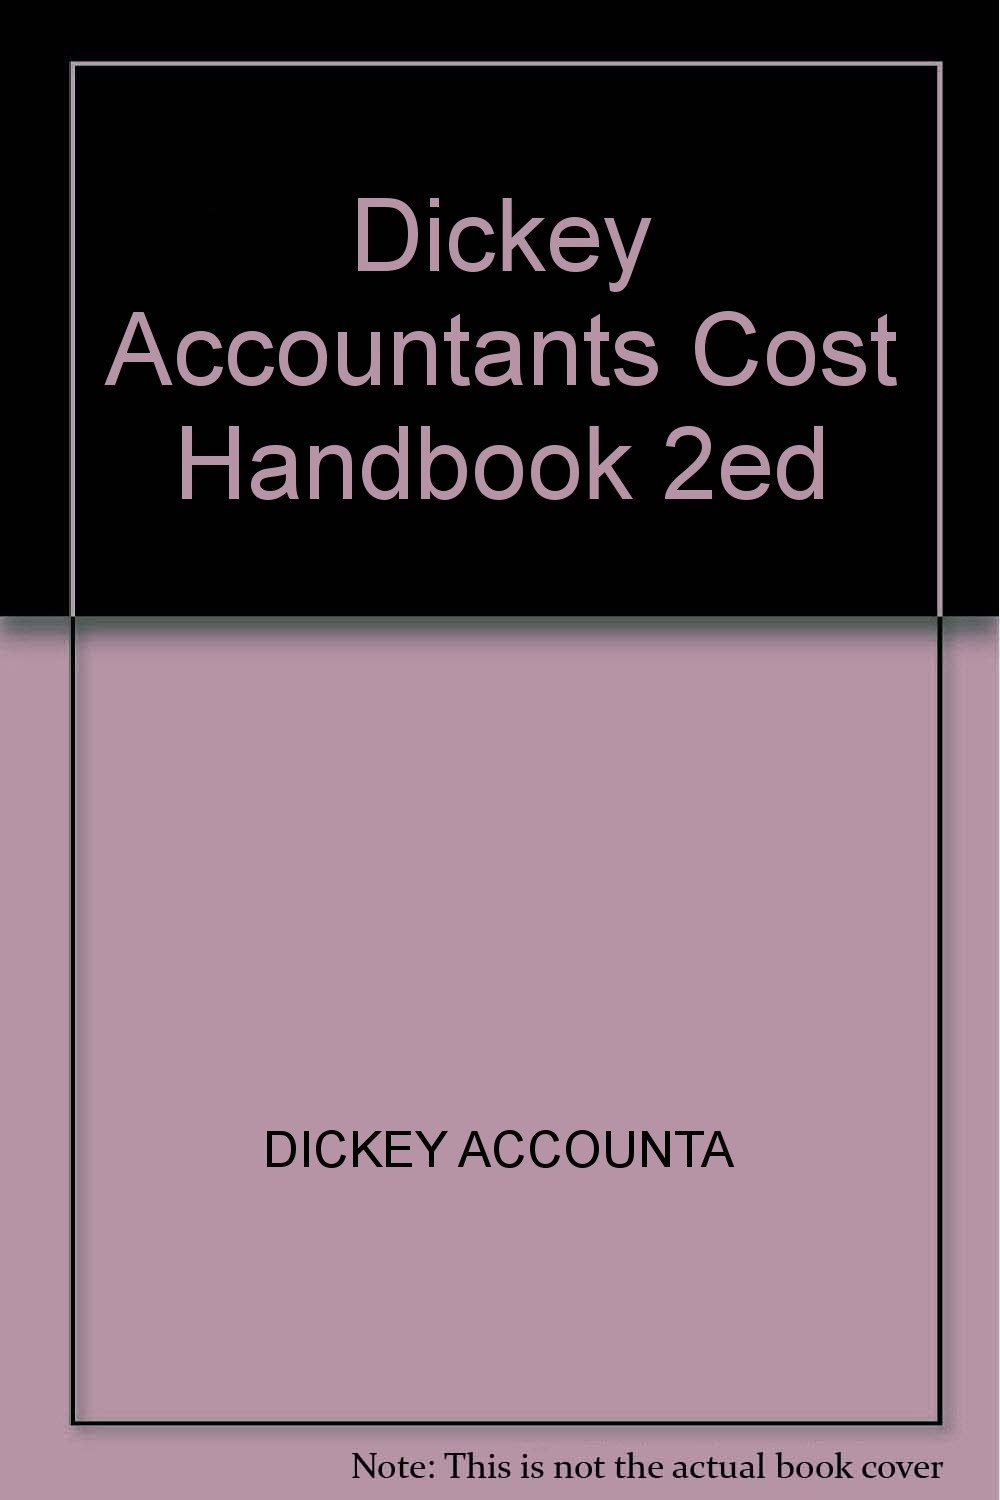 Dickey Accountants Cost Handbook 2ed